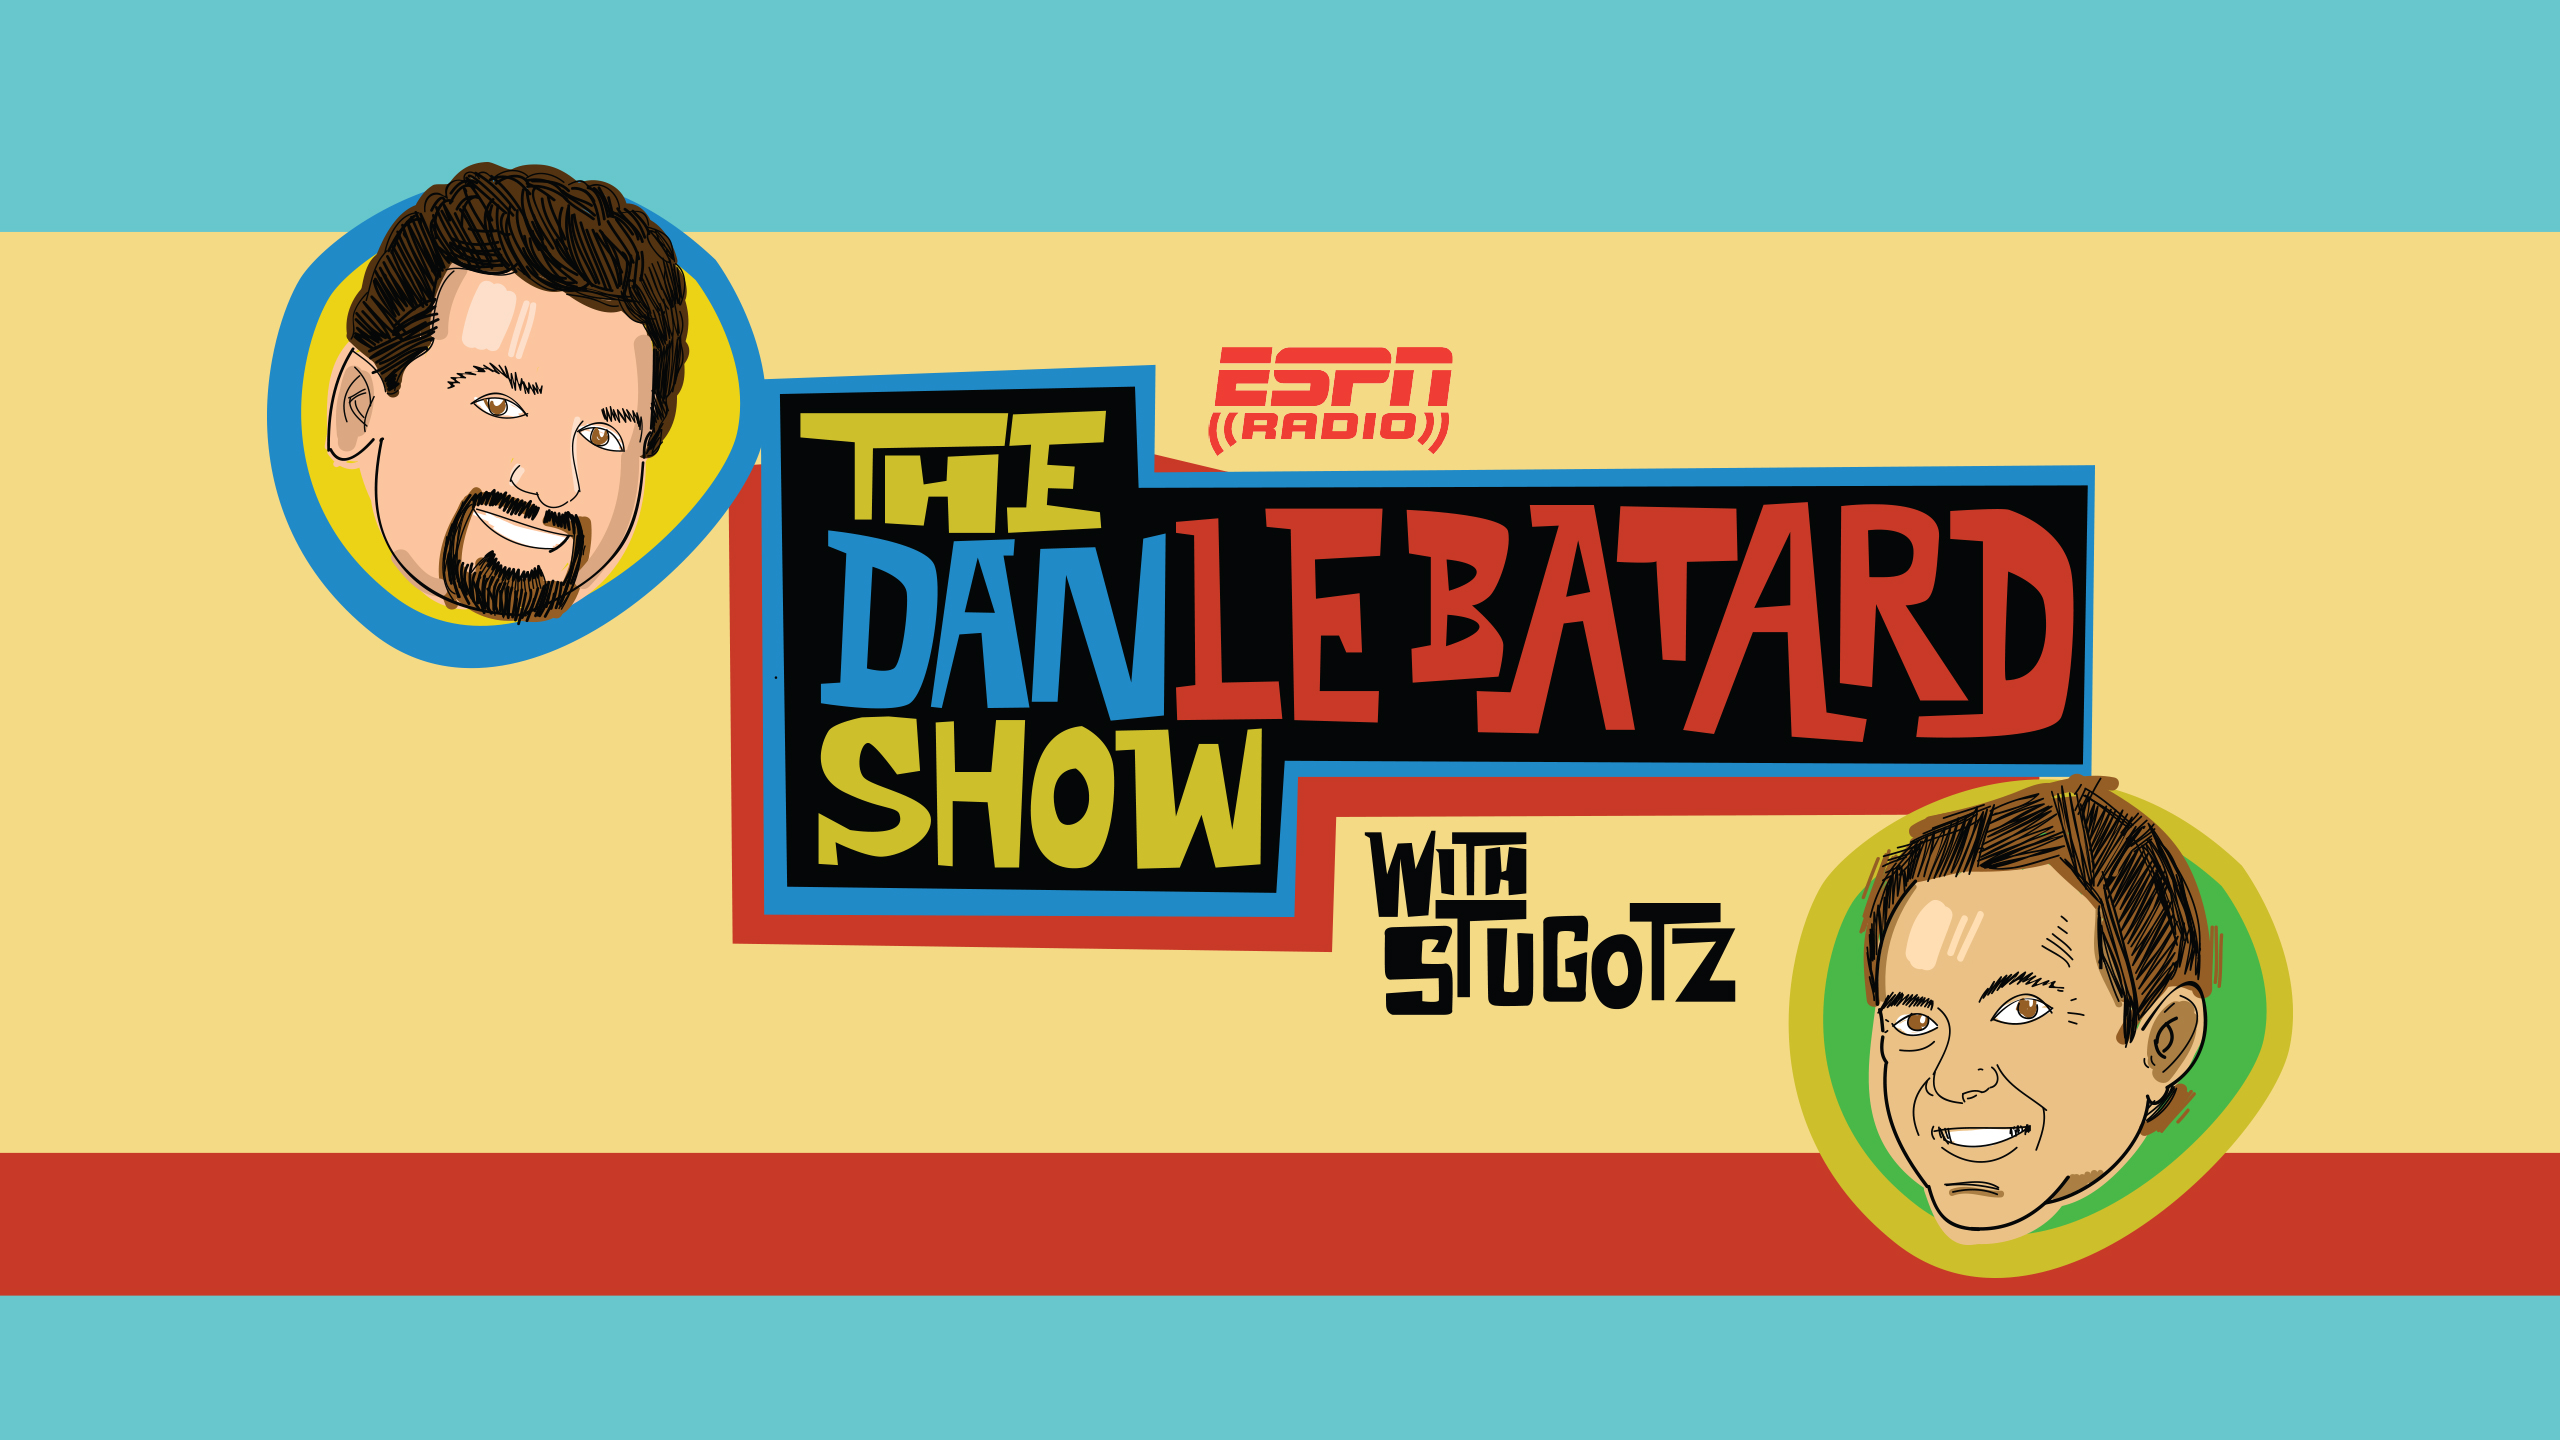 Wed, 1/16 - The Dan Le Batard Show with Stugotz Presented by Progressive